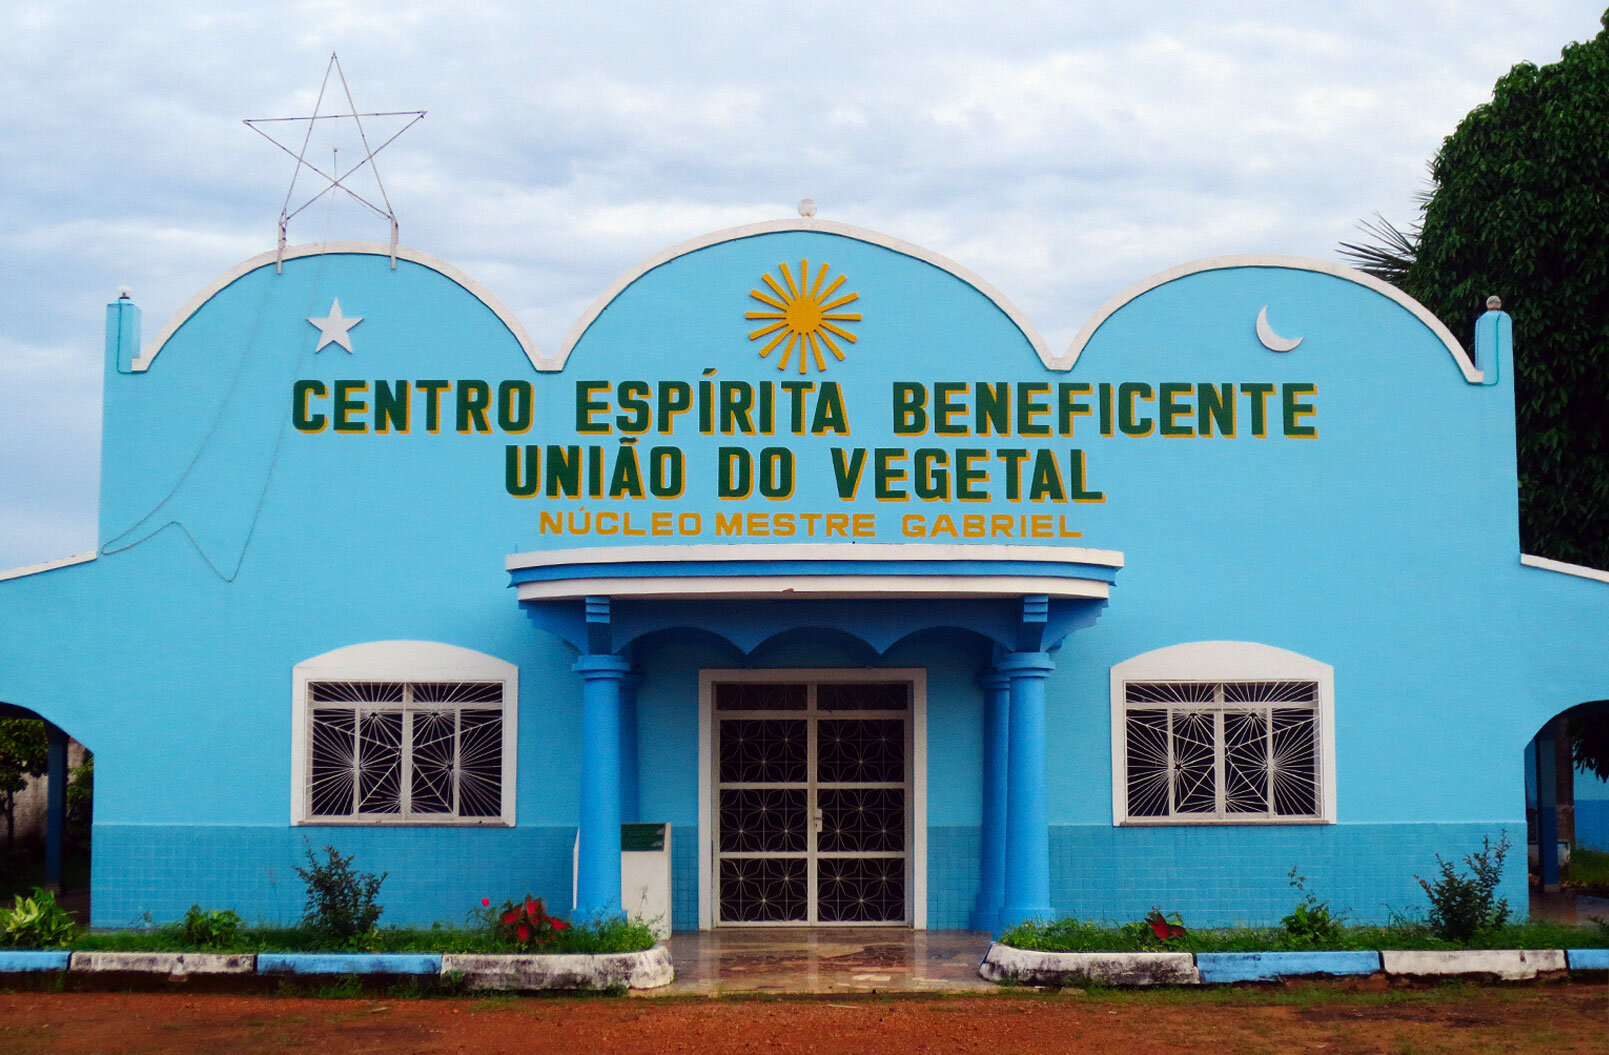 Our History - The União do Vegetal was created by José Gabriel da Costa, or Mestre Gabriel, as he is called by his disciples.Mestre Gabriel was born on February 10, 1922, the eighth child in a family of 14 children. In the 1940s, he worked as a rubber tapper in the Amazon. He drank Hoasca for the first time on April 1, 1959, in the Amazon forest and began distributing the tea to associates and disciples shortly thereafter.In 1961, while still in the forest, Mestre Gabriel announced the creation of the União do Vegetal. Since then the União do Vegetal has worked for the improvement of the human being, developing moral, intellectual and spiritual virtues, and is considered by its members to be a place of peace, goodness, and harmony on earth.Mestre Gabriel founded the União with the intention of making it an example of seriousness and transparency, focused on respect for the laws of the country, as well as for spiritual laws, in order to fulfill his goal: to bring peace among men.